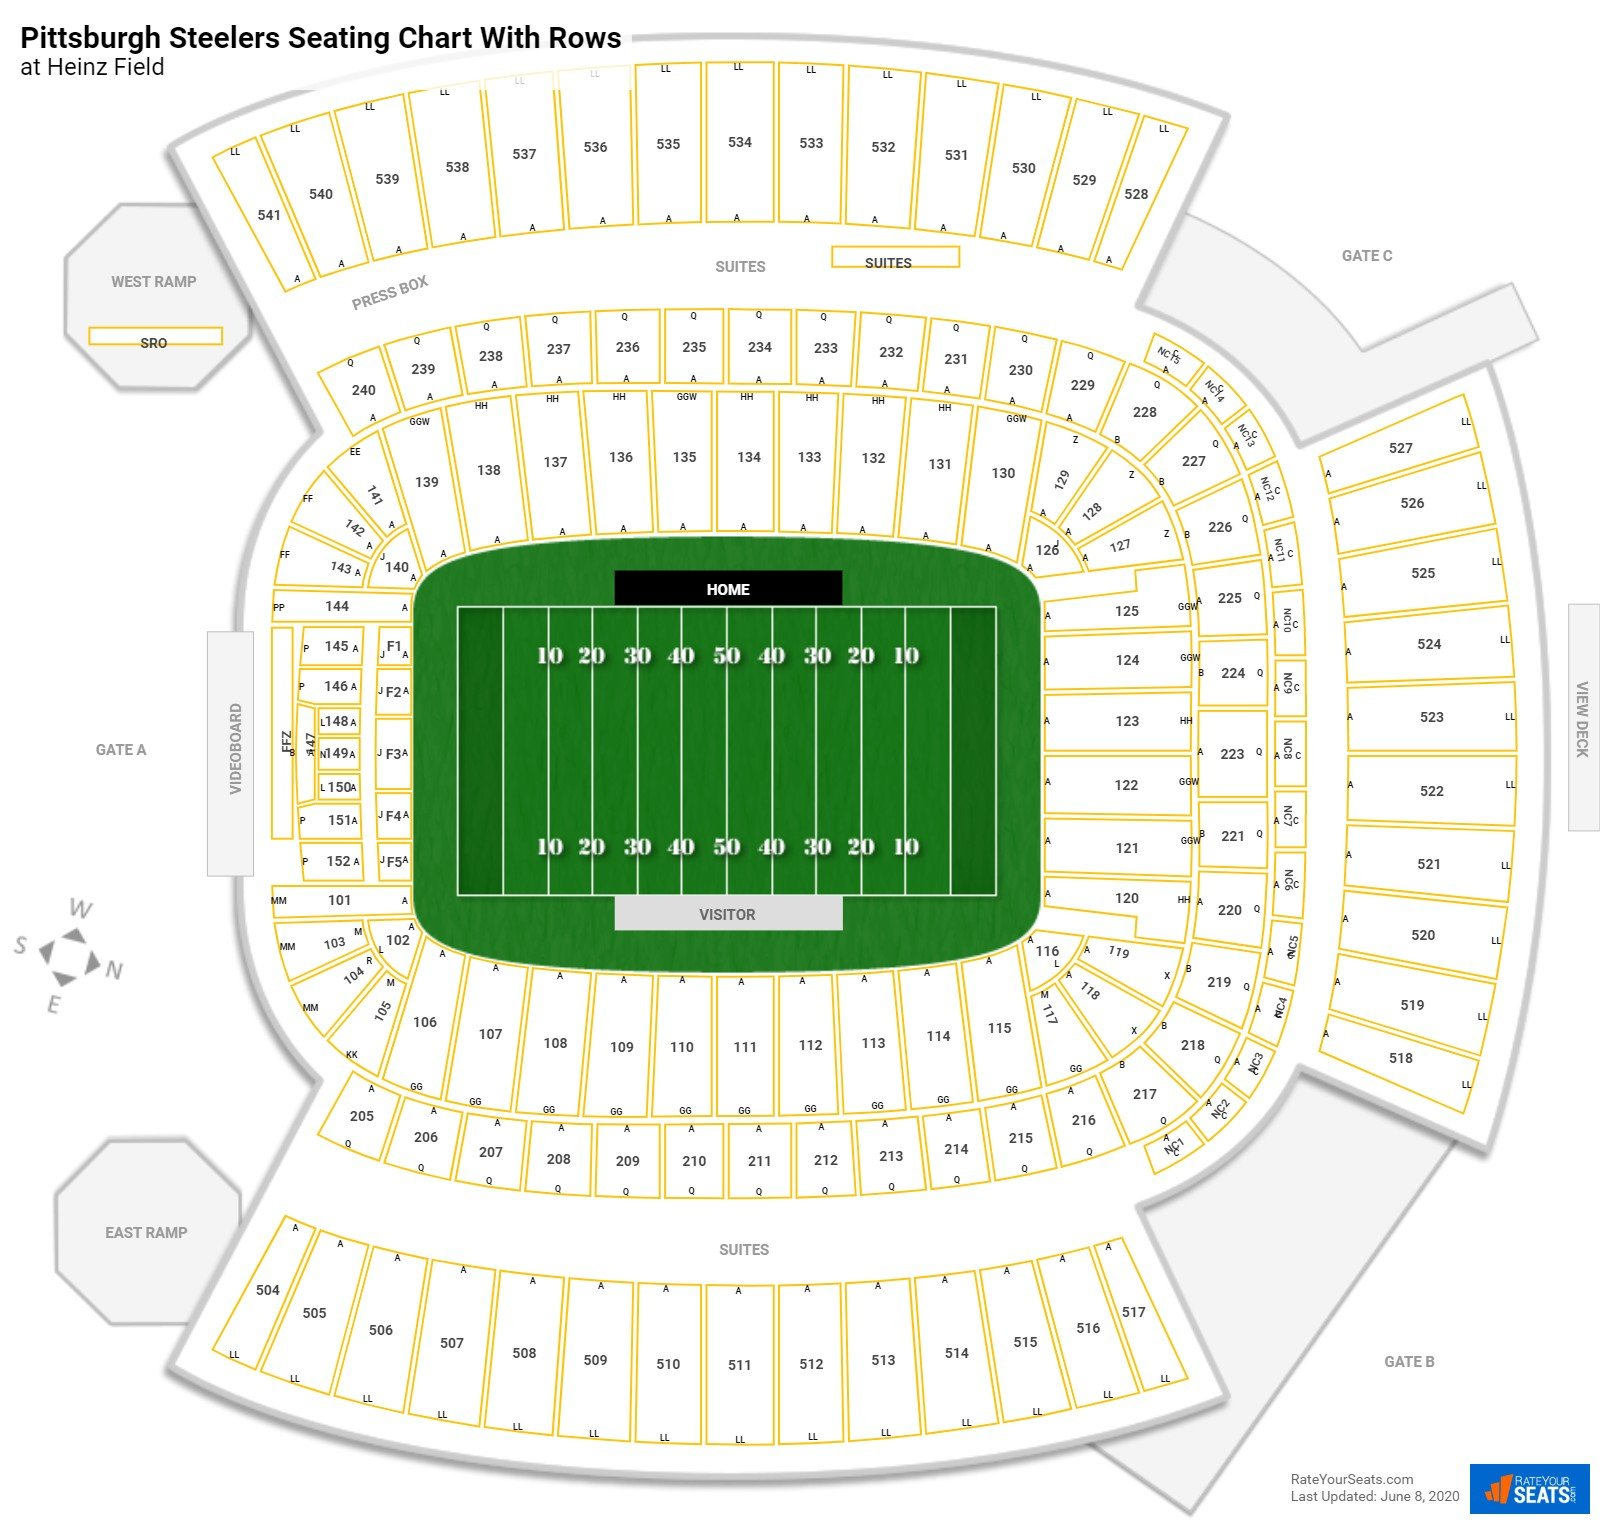 Heinz Field seating chart with rows